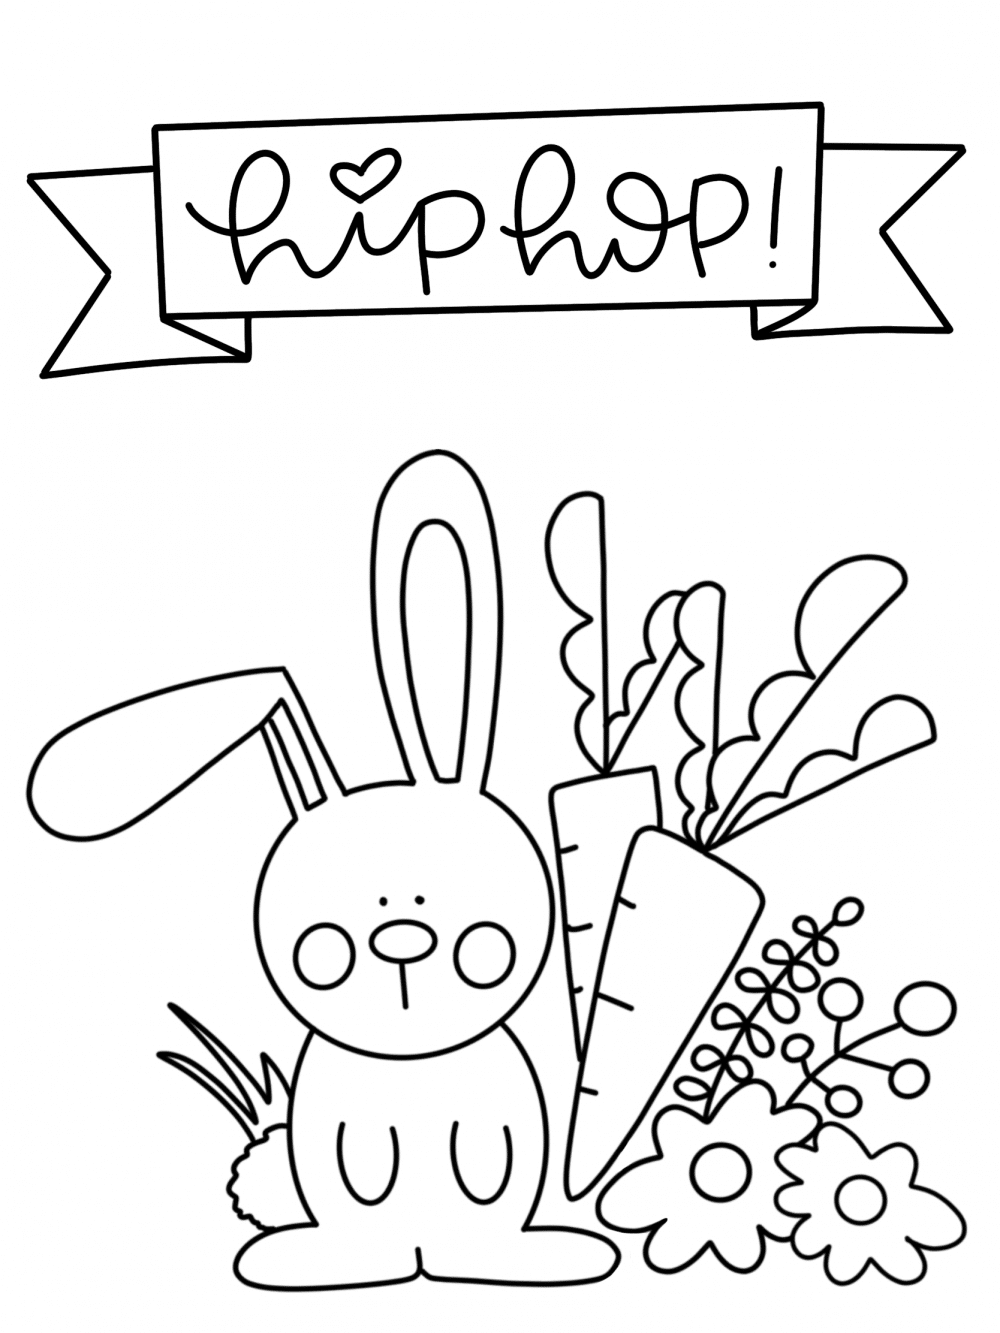 Free Easter Coloring Page Printable - The Sweeter Side of ...